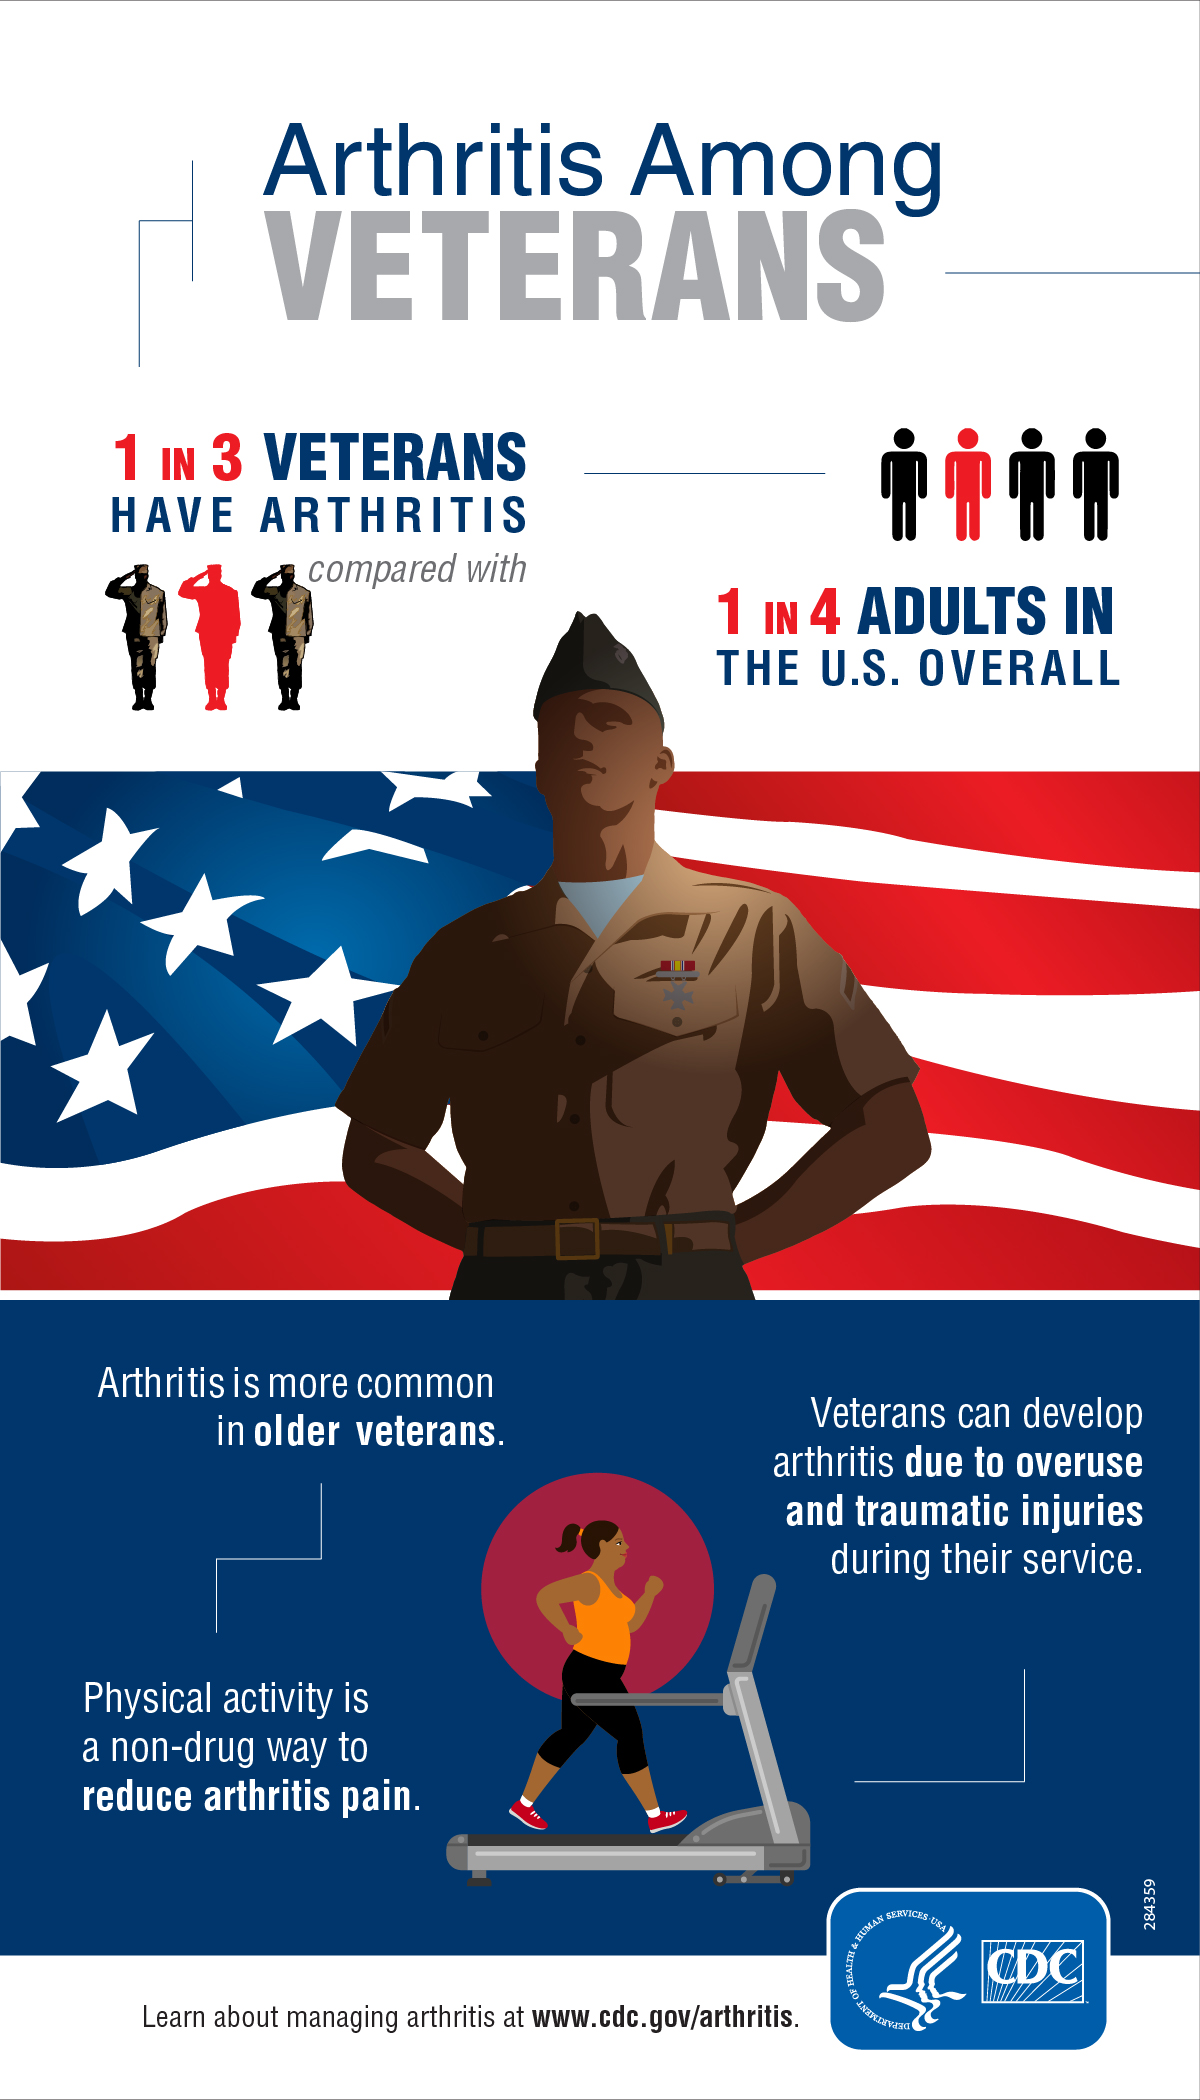 1 in 3 veterans have arthritis